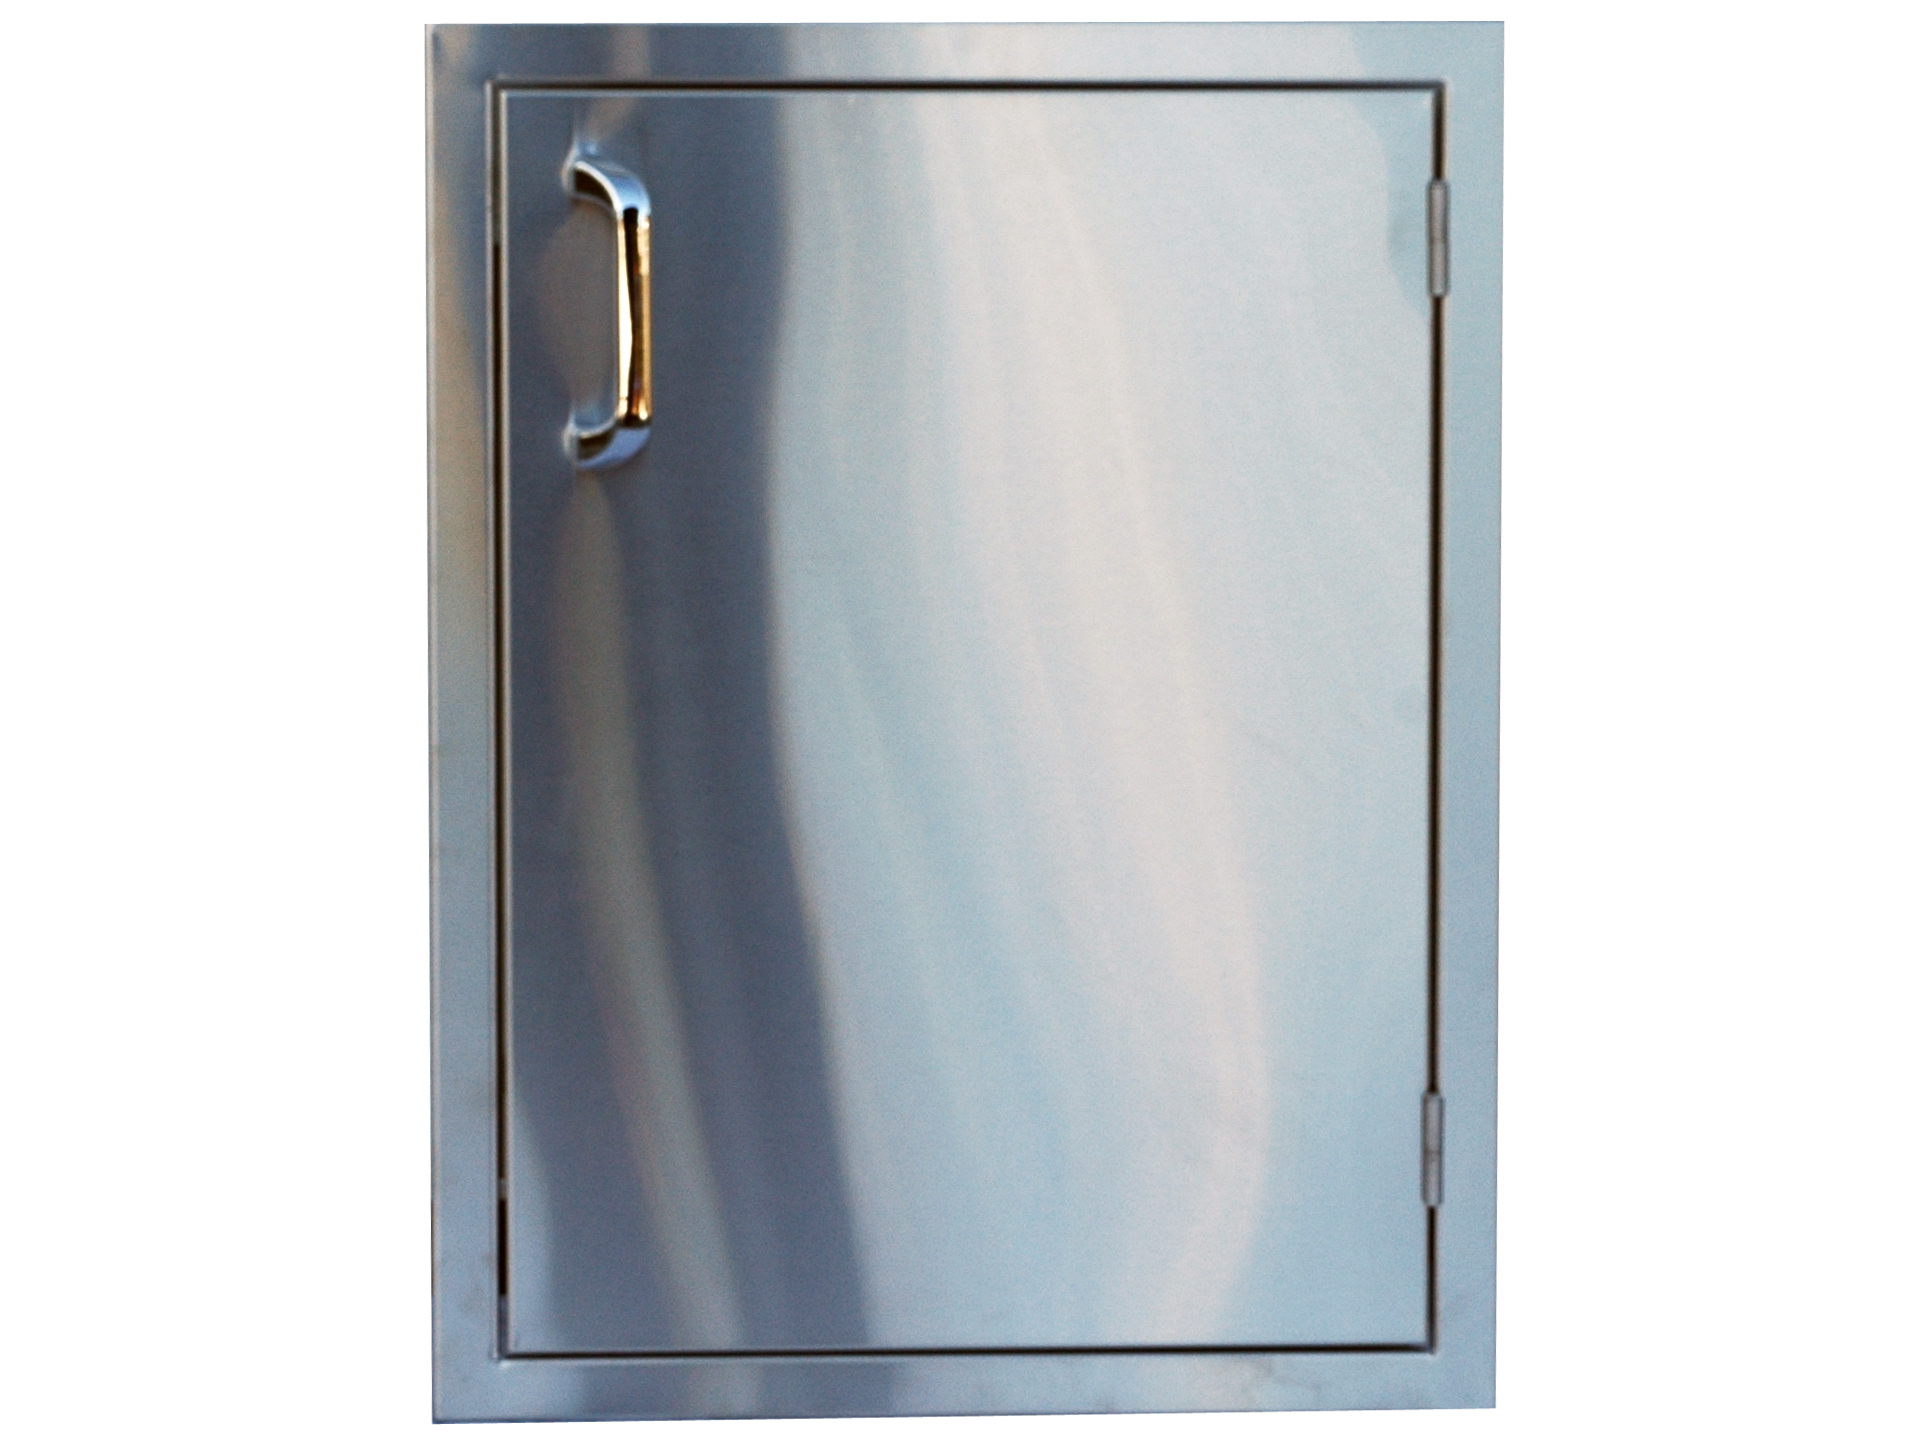 Access Door For Metal Doors : Outdoor greatroom stainless steel vertical single access